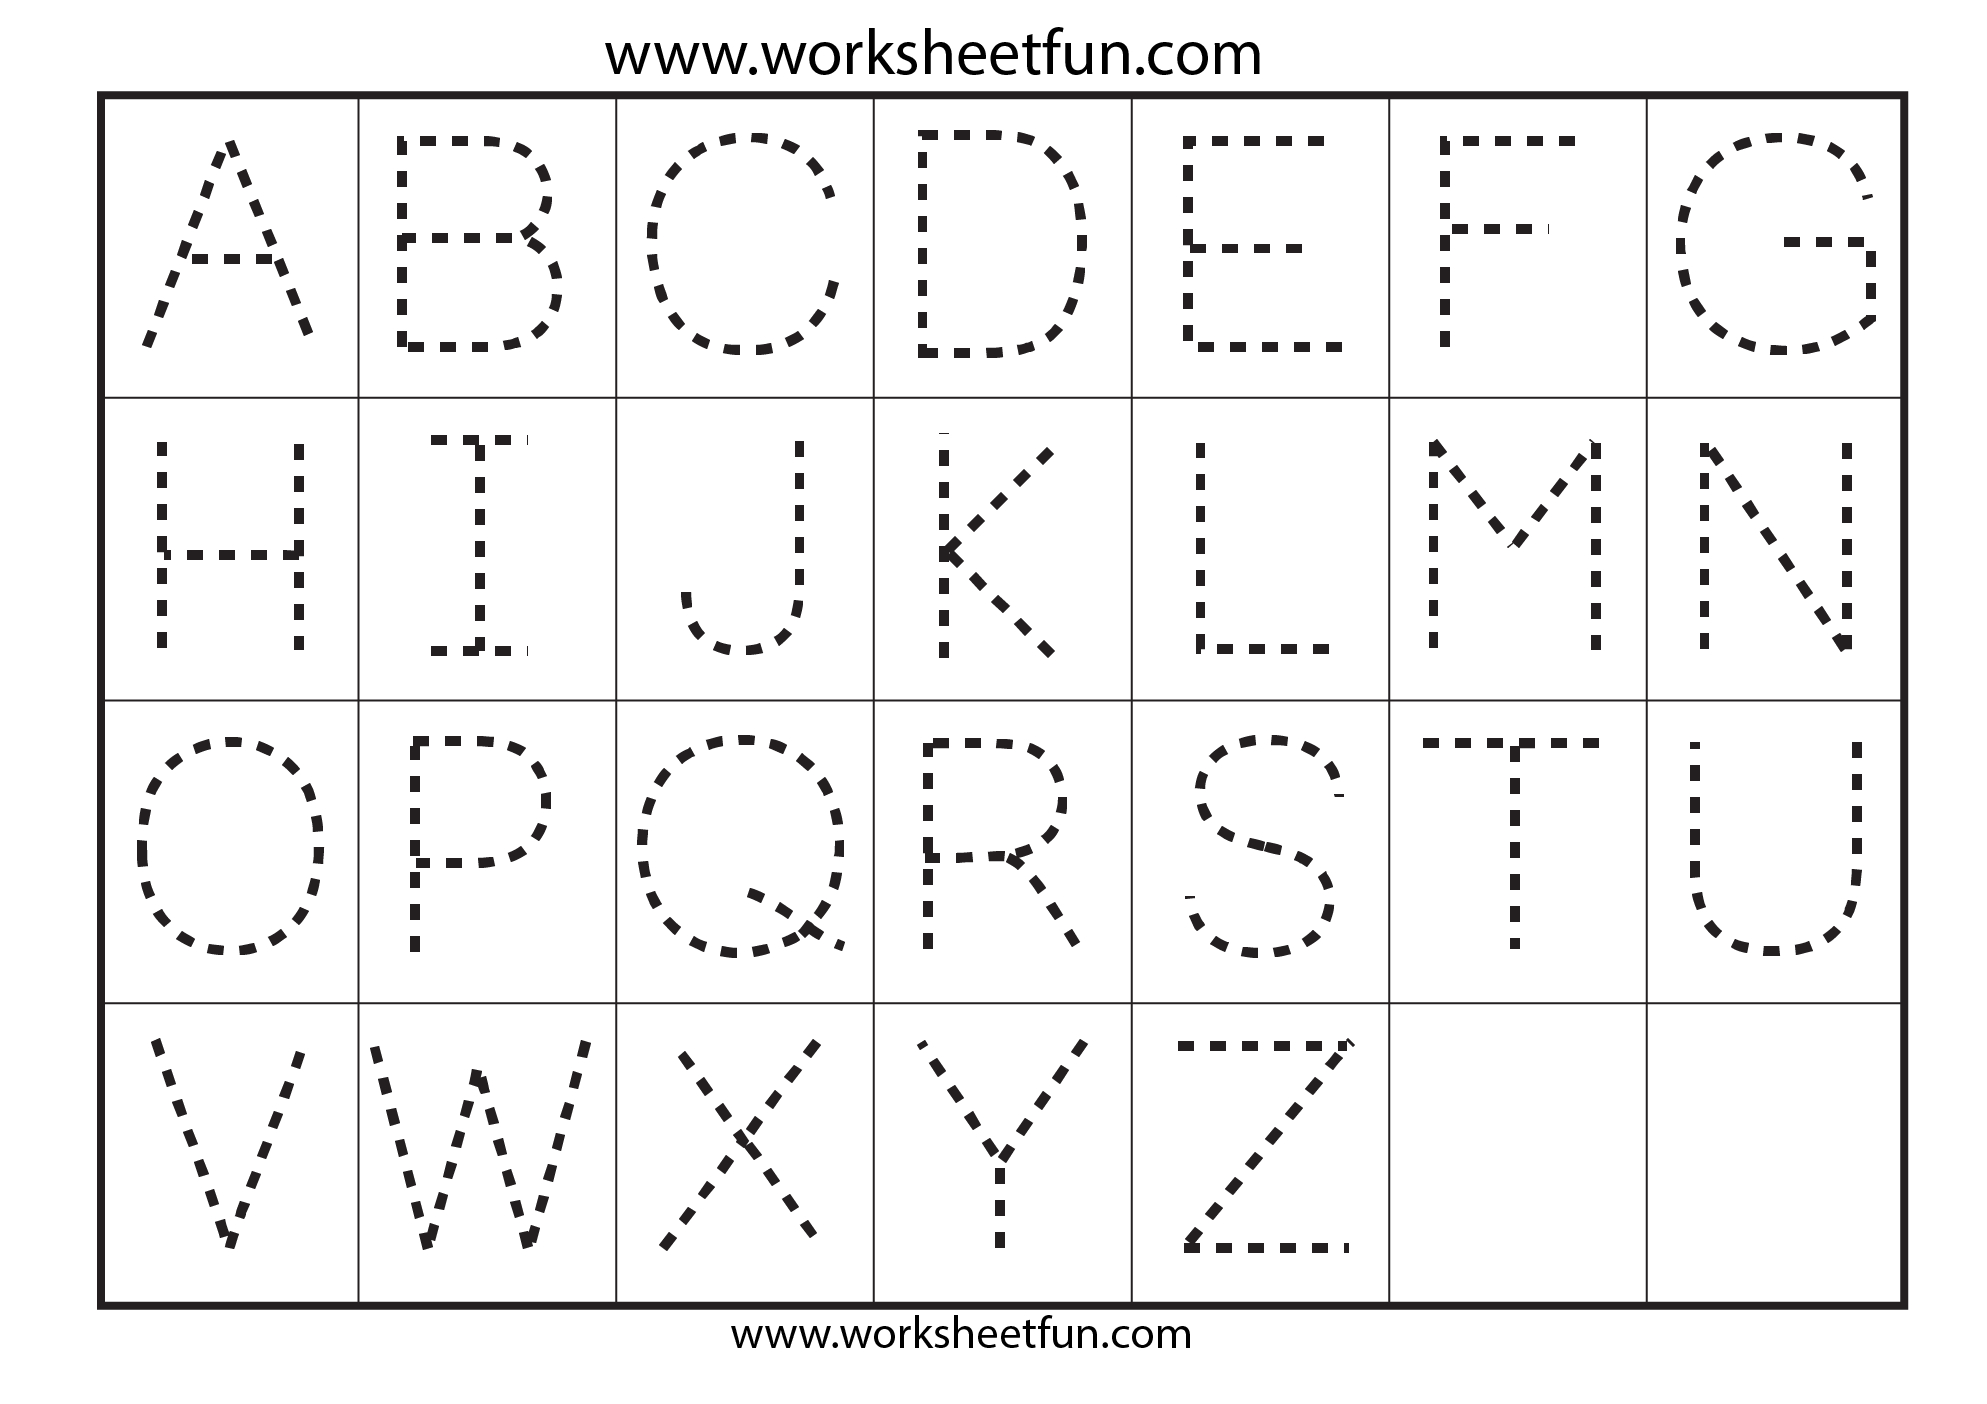 Preschool Worksheets Alphabet Tracing Letter A | Art | Alphabet - Free Printable Preschool Worksheets Tracing Letters